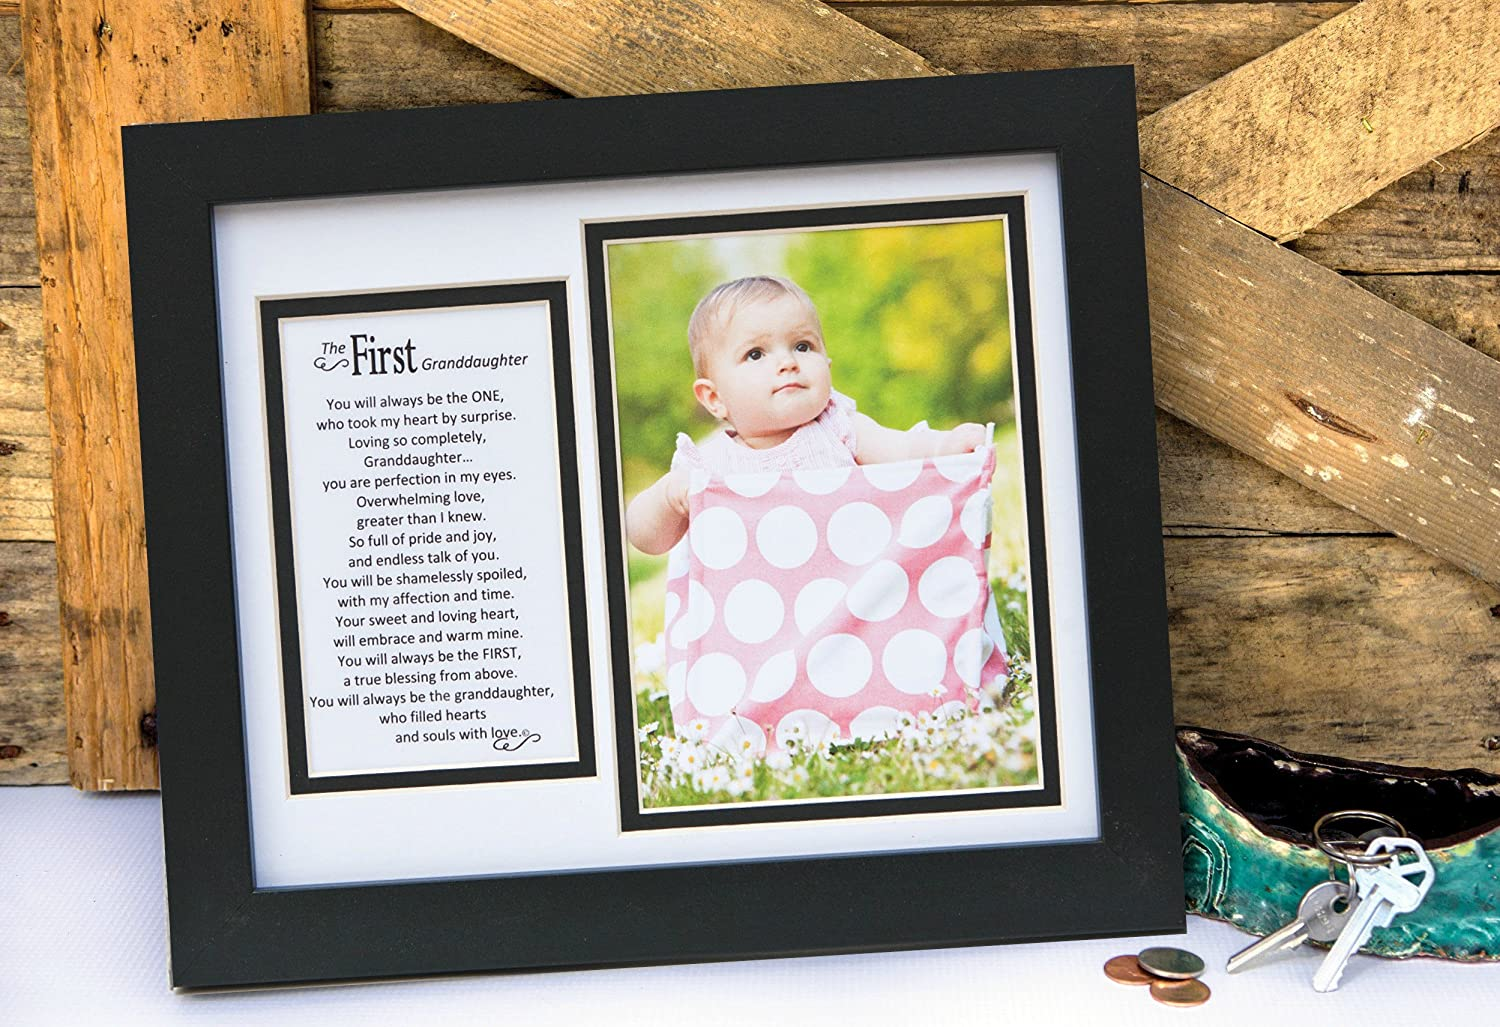 First Granddaughter The Grandparent Gift Frame Wall Decor